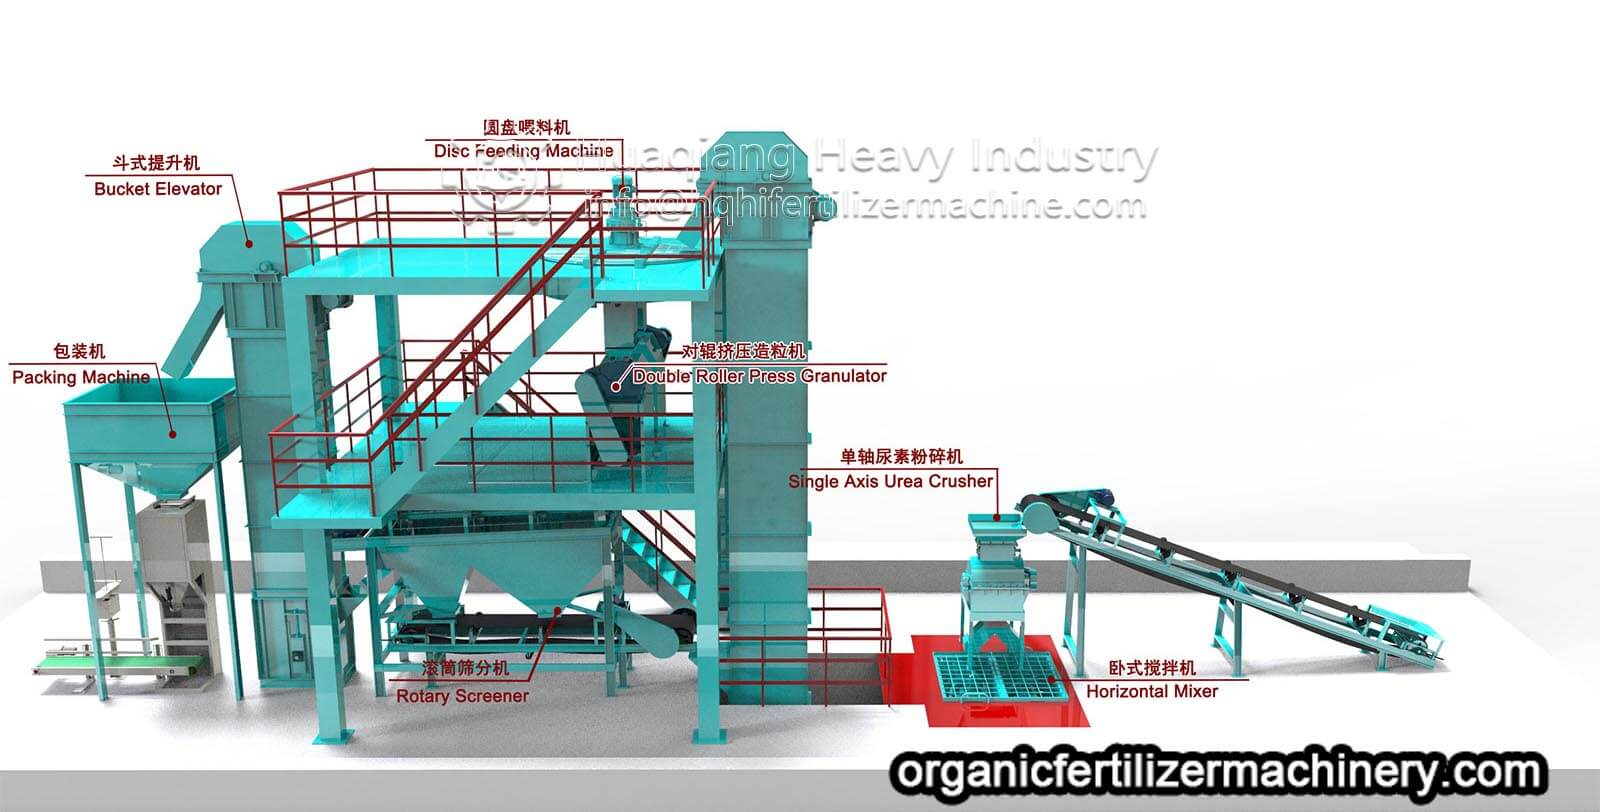 Production technology of organic fertilizer by double roller granulation